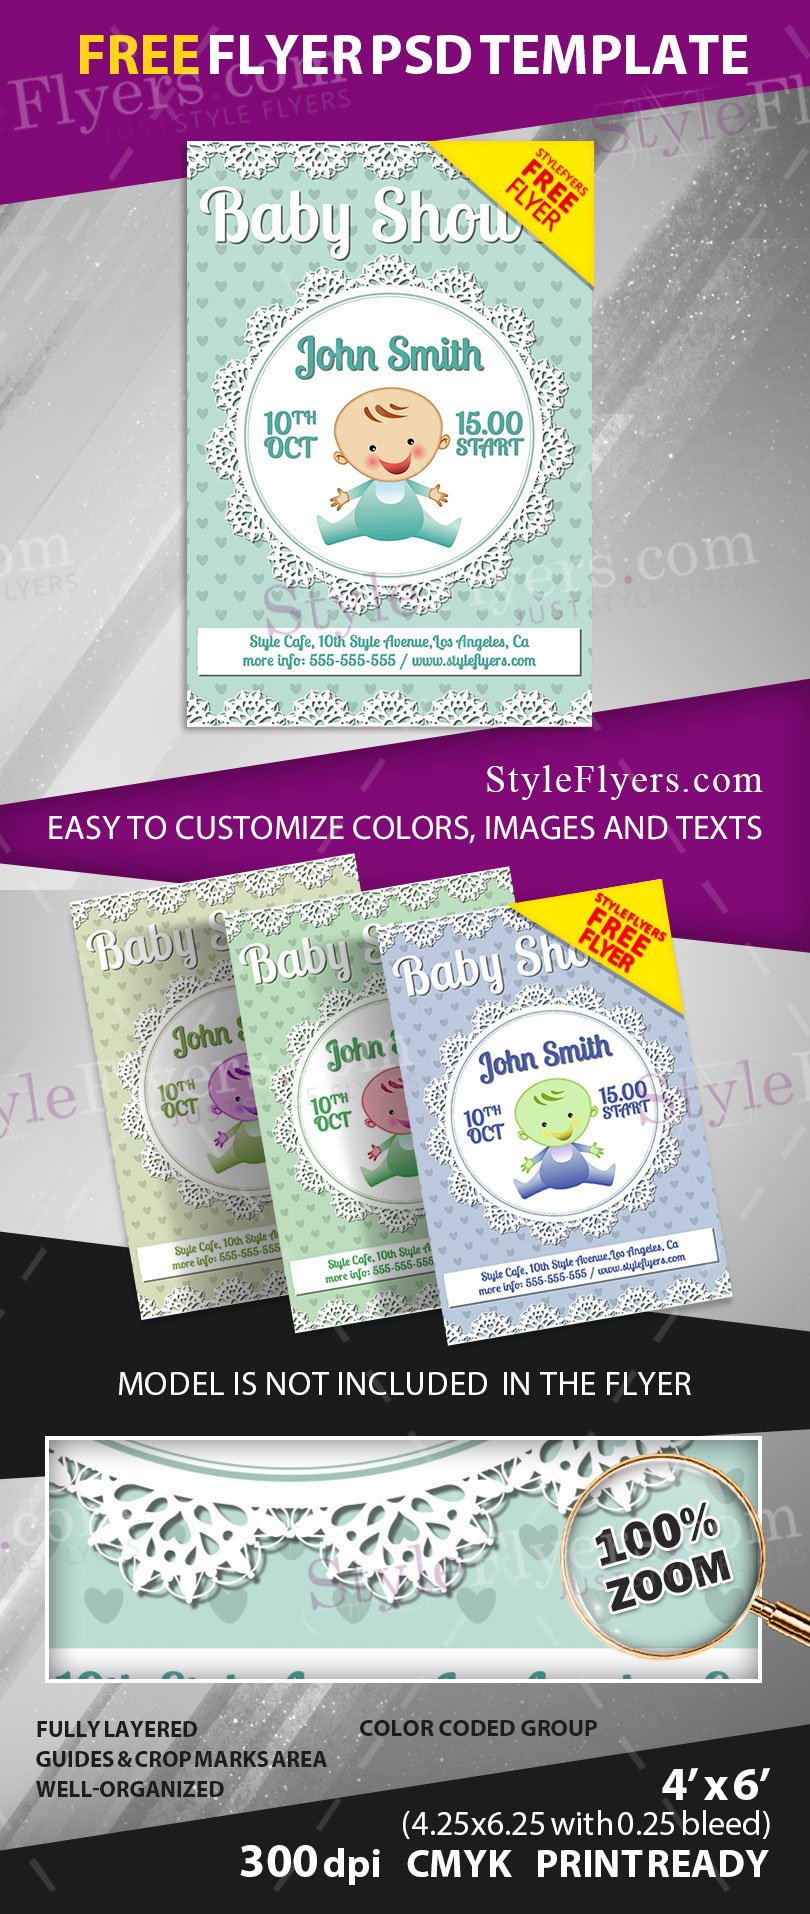 preview_baby_shower_psd_flyer_template